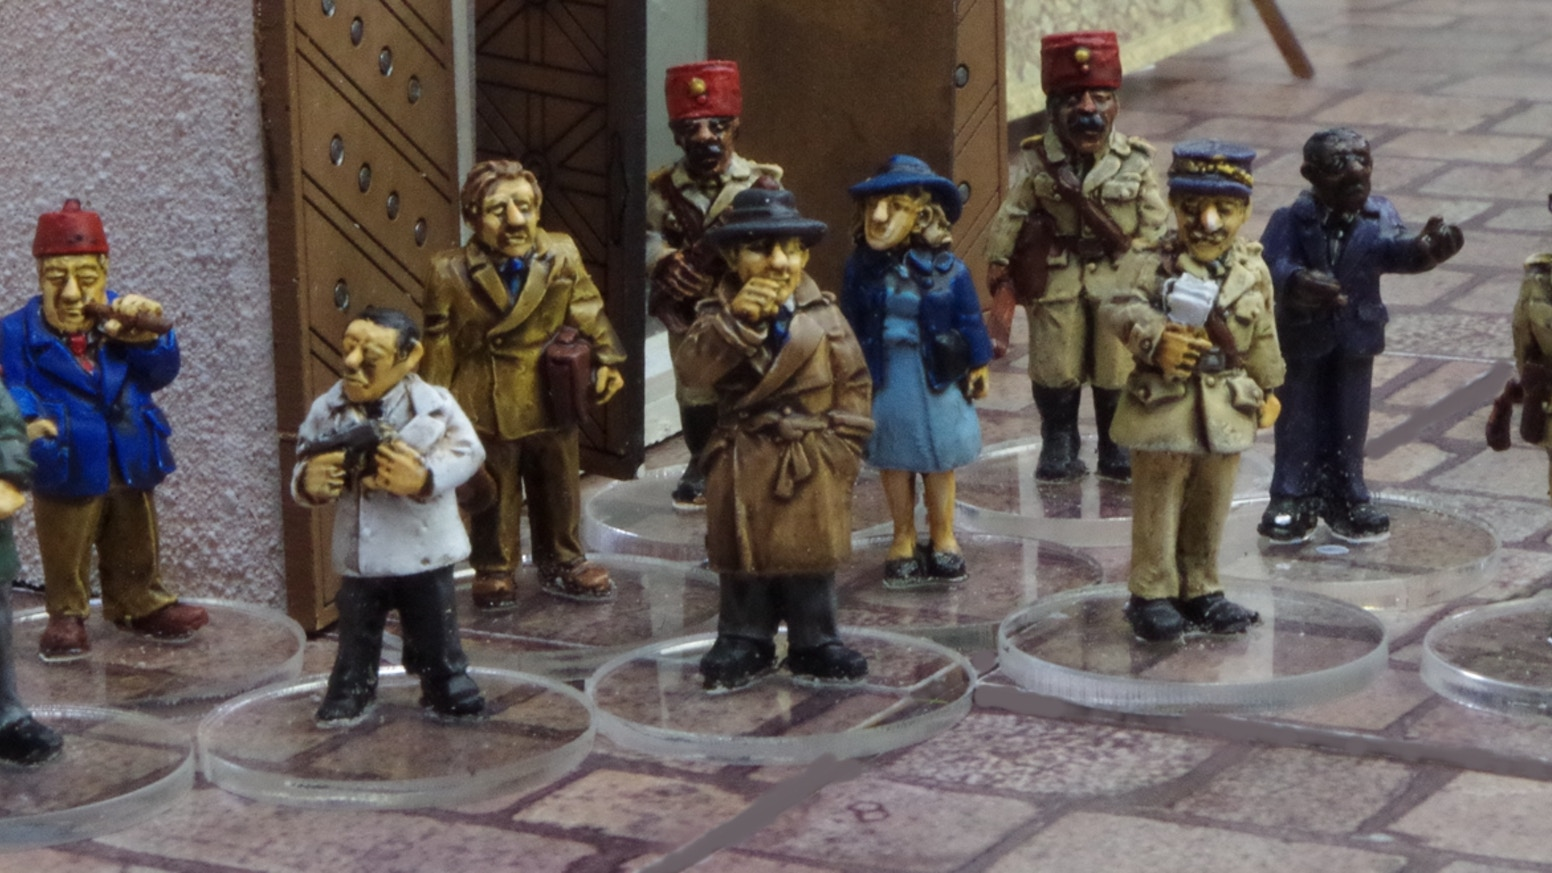 A range of 28mm miniatures inspired by iconic, classic, pulp movies such as Casablanca, The African Queen, 39 Steps, The Maltese Falcon